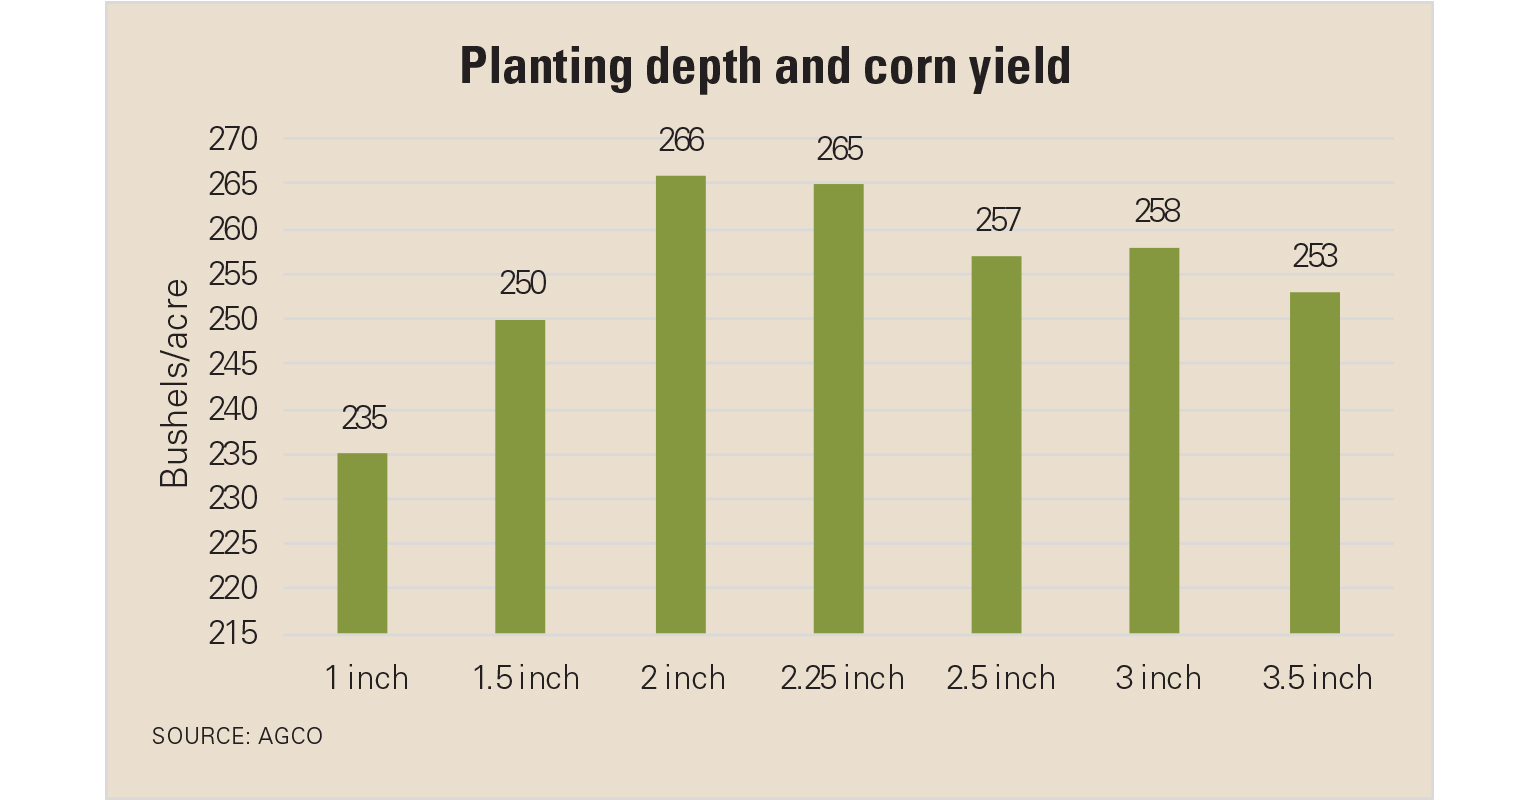 Planting depth and corn yield